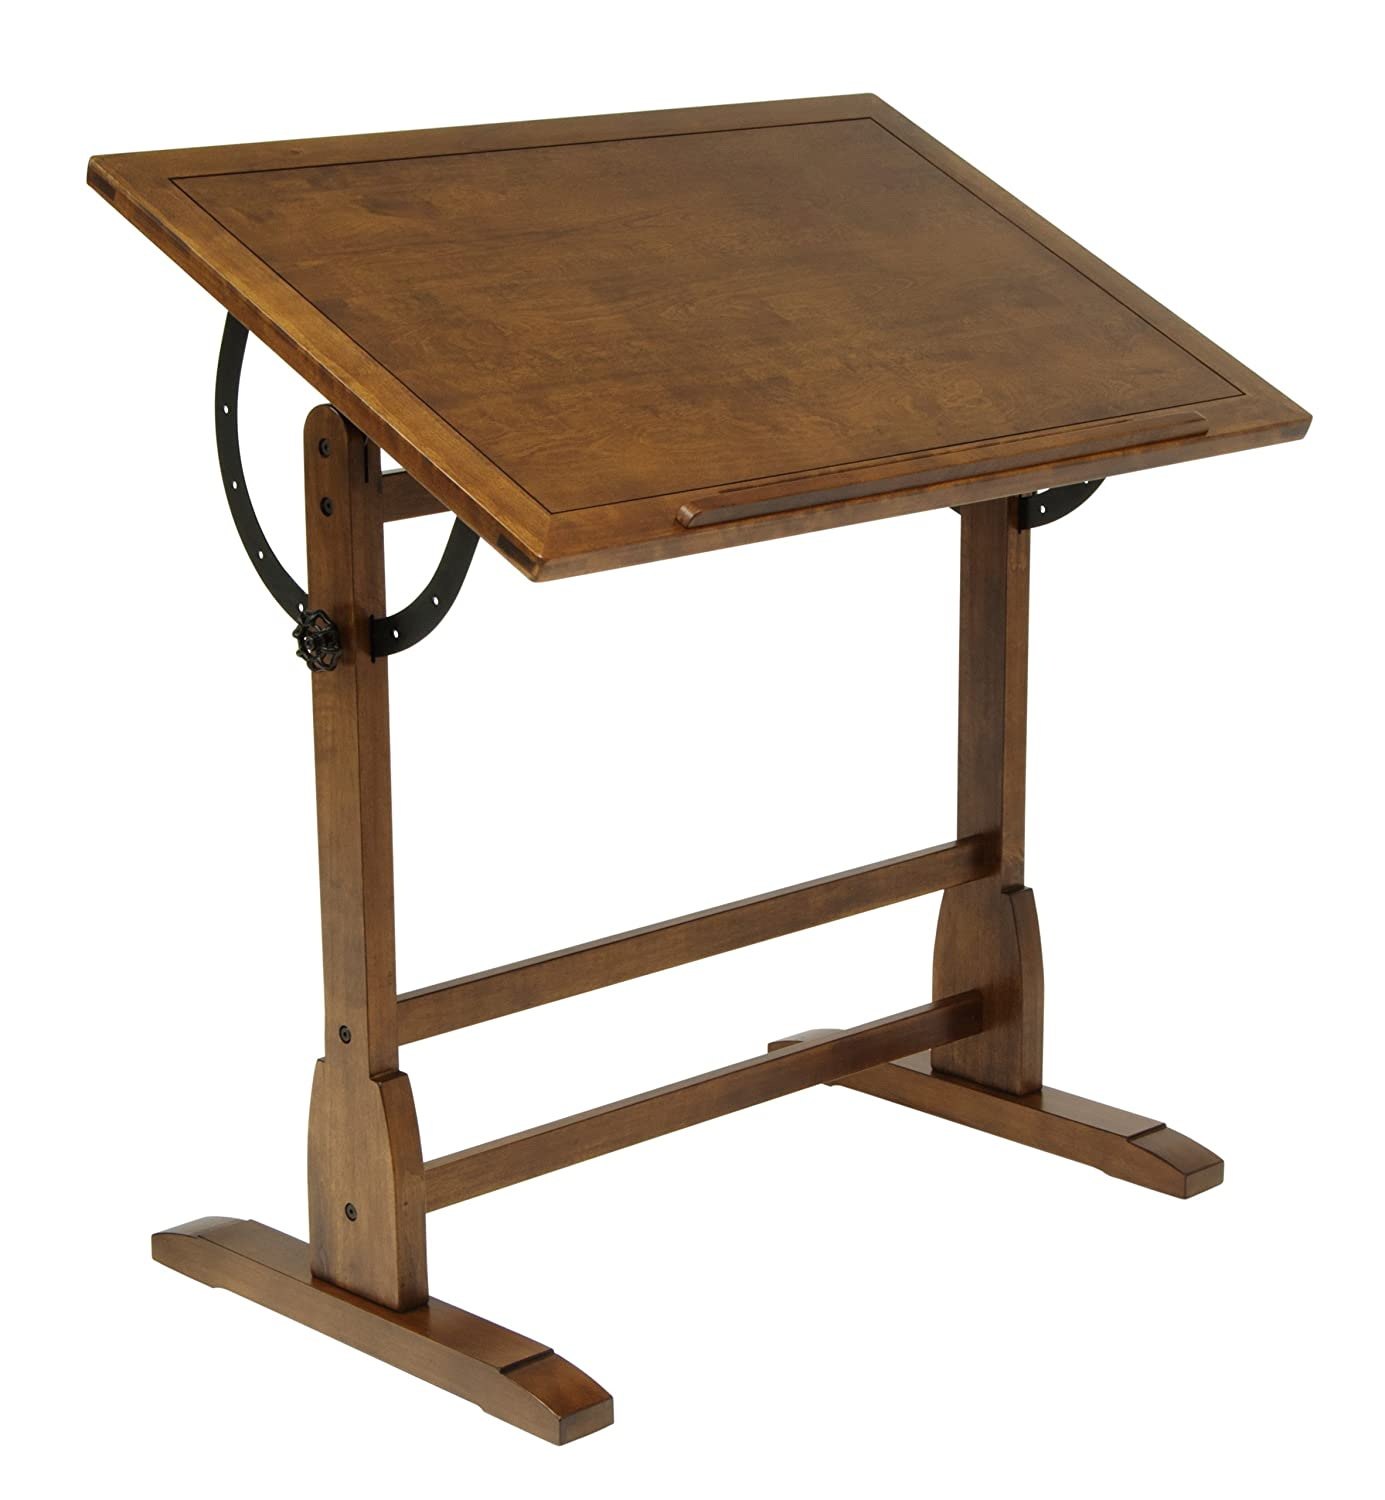 New Vintage Drafting Table Oak Wood Art Crafts Architects Design Drawing Studio Ebay